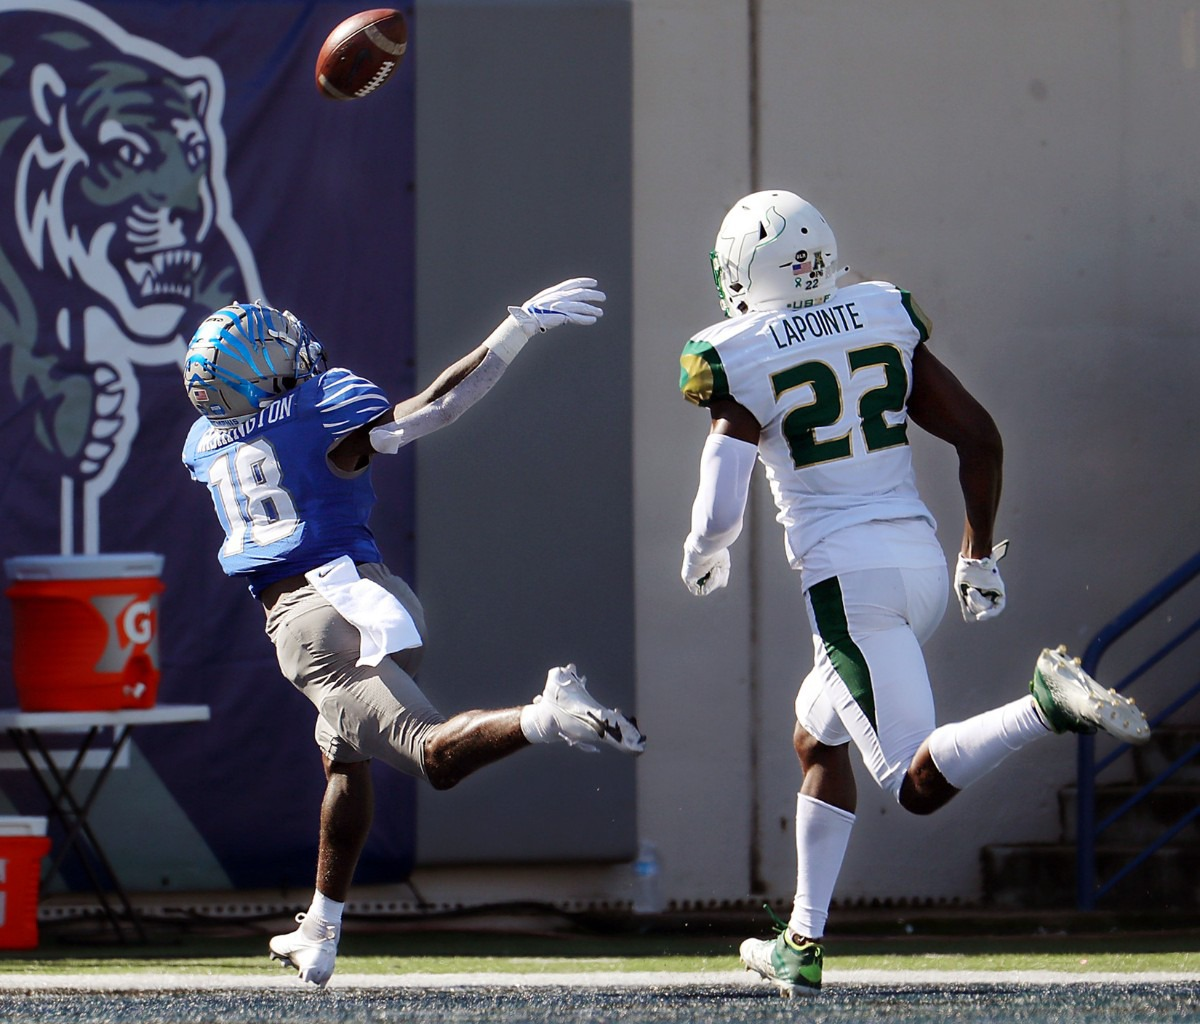 <strong>University of Memphis receiver Tahj Washington (18) stretches out for a would-be touchdown during a Nov. 7, 2020 home game at the Liberty Bowl Memorial Stadium against the University of South Florida.</strong> (Patrick Lantrip/Daily Memphian)